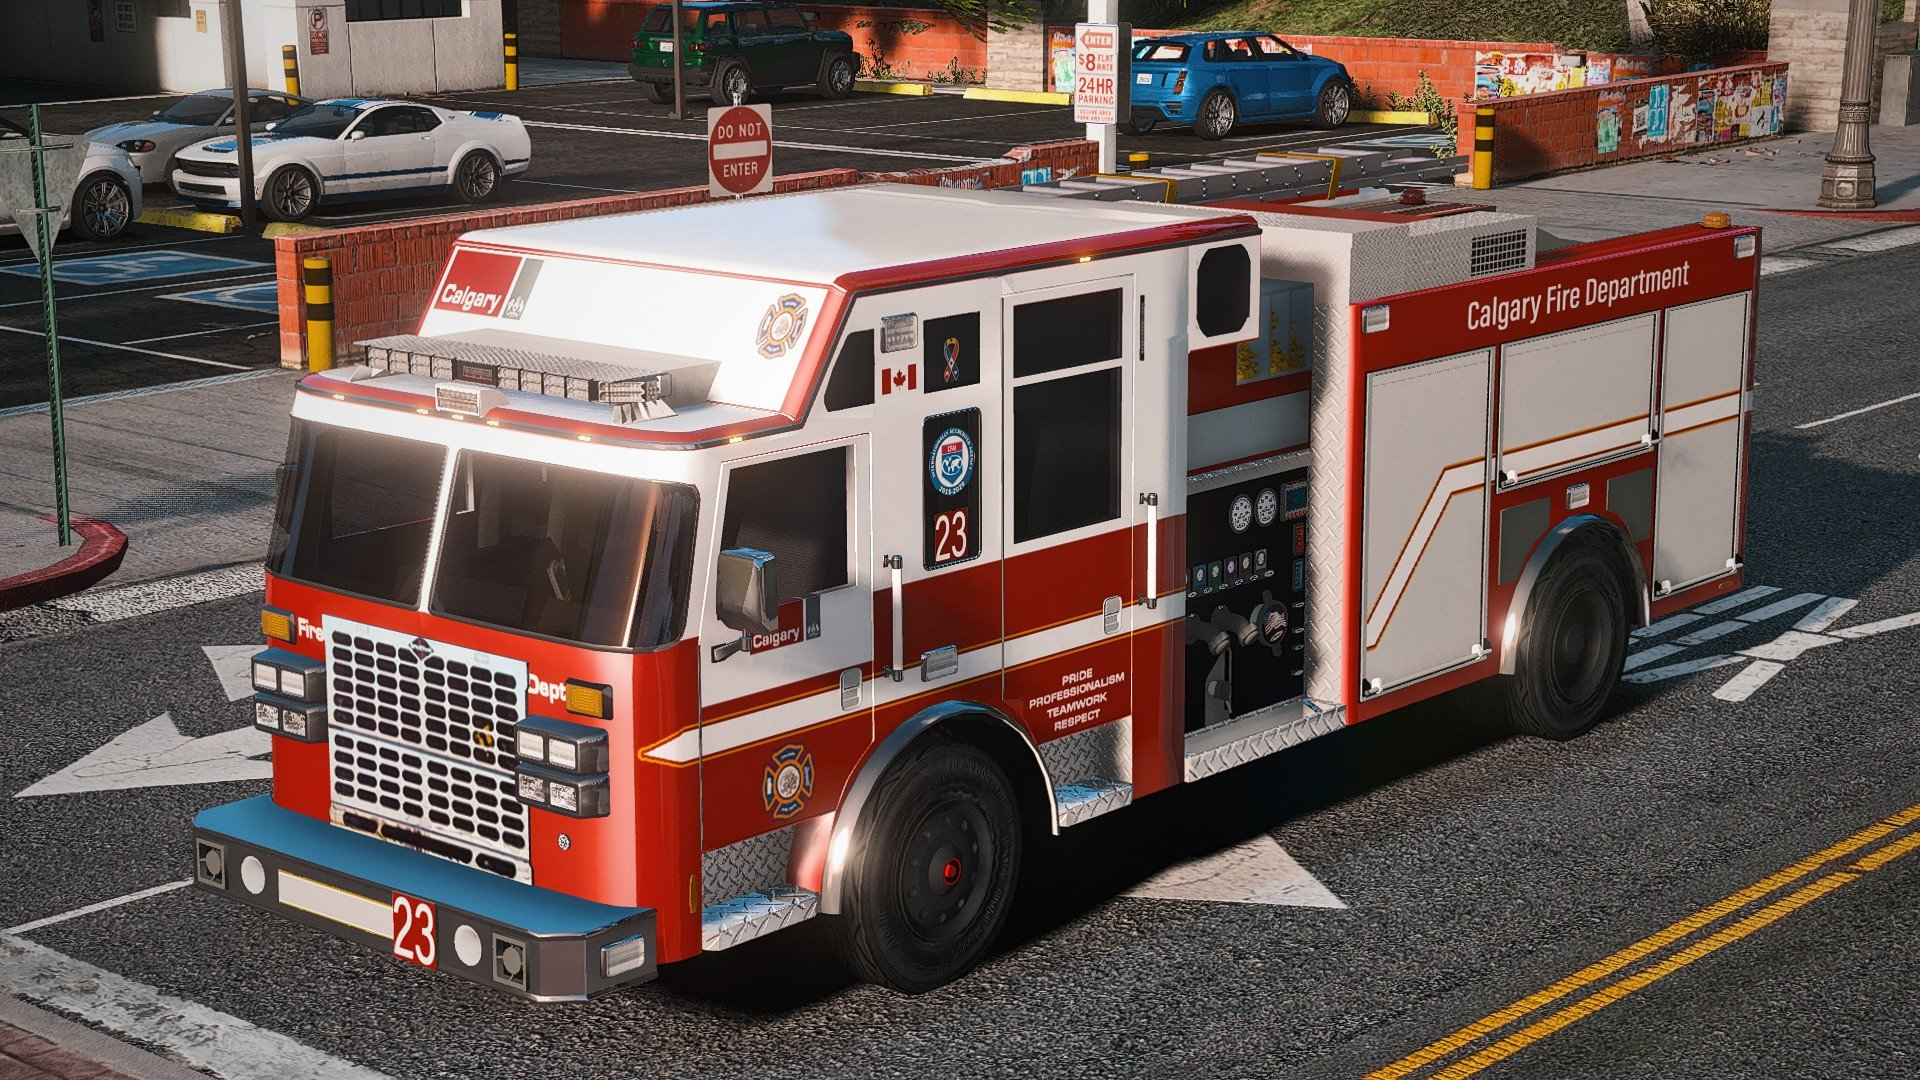 CFD Truck 23